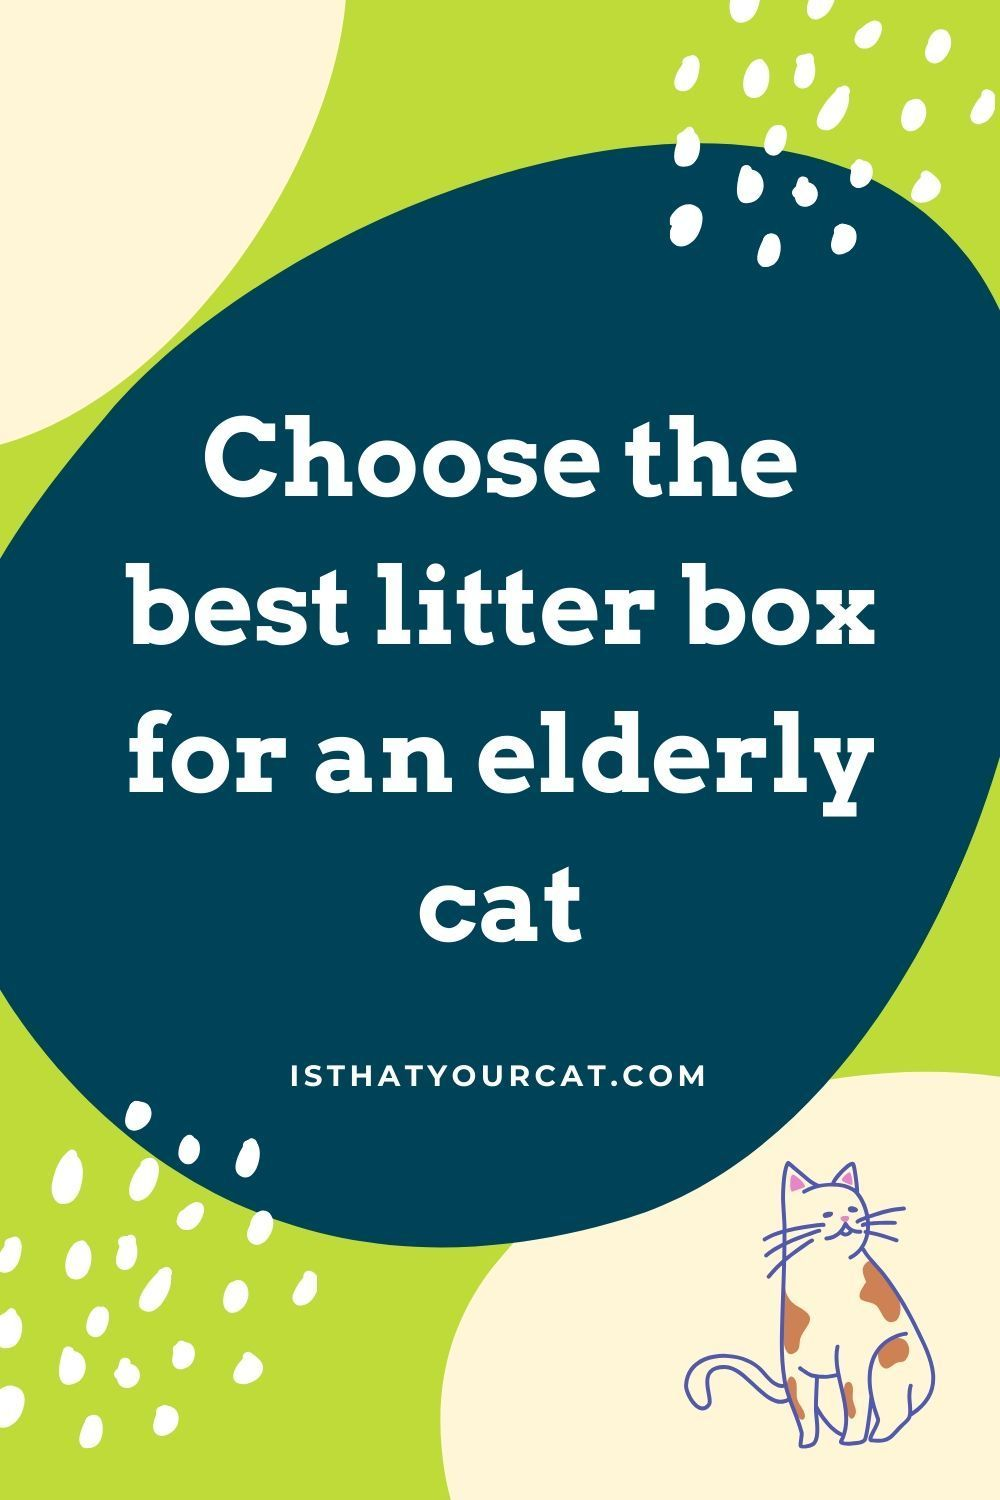 What Is The Best Litter Box For Elderly Cats In 2020 Litter Box Best Litter Box Best Cat Litter